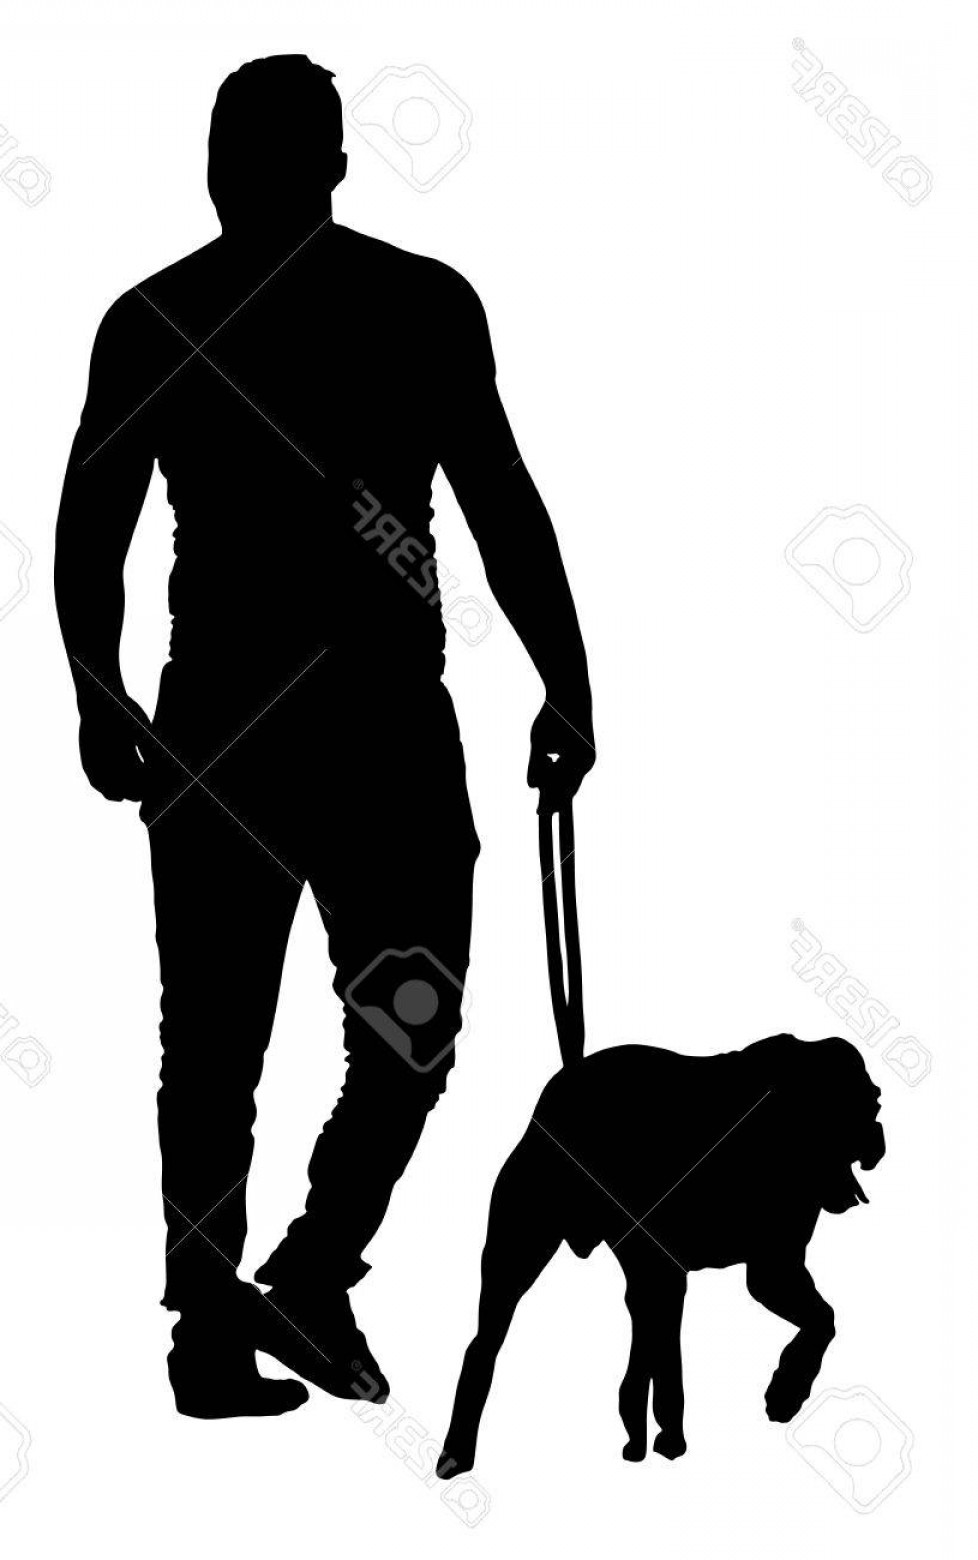 Vector Silhouette Dog Walk: Photostock Vector Young Urban Man Walking Dog Vector Silhouette Illustration Isolated On White Background